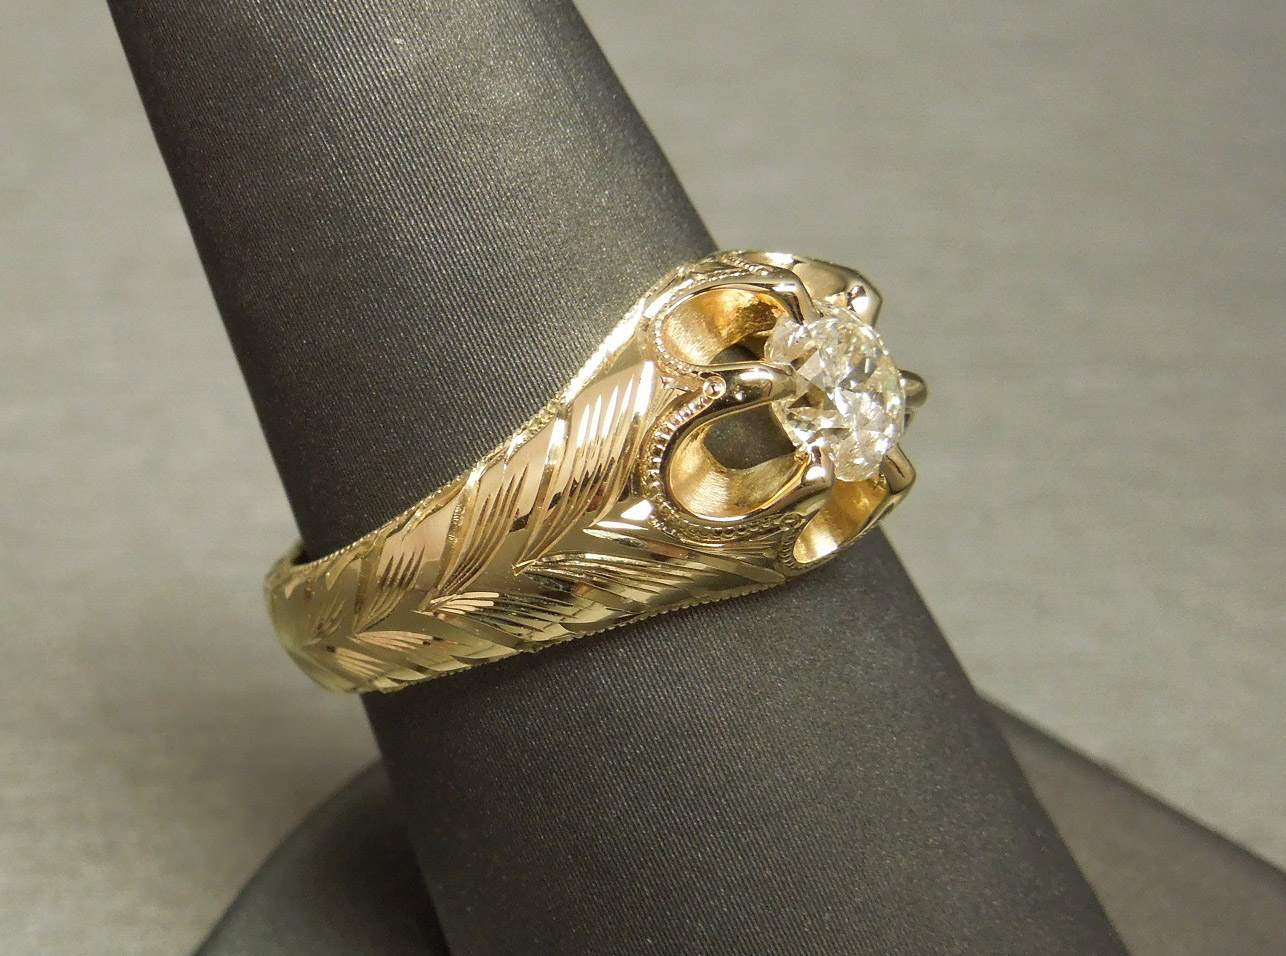 Vintage Unisex 084ct Diamond Engraved Gold Gypsy Ring C1950